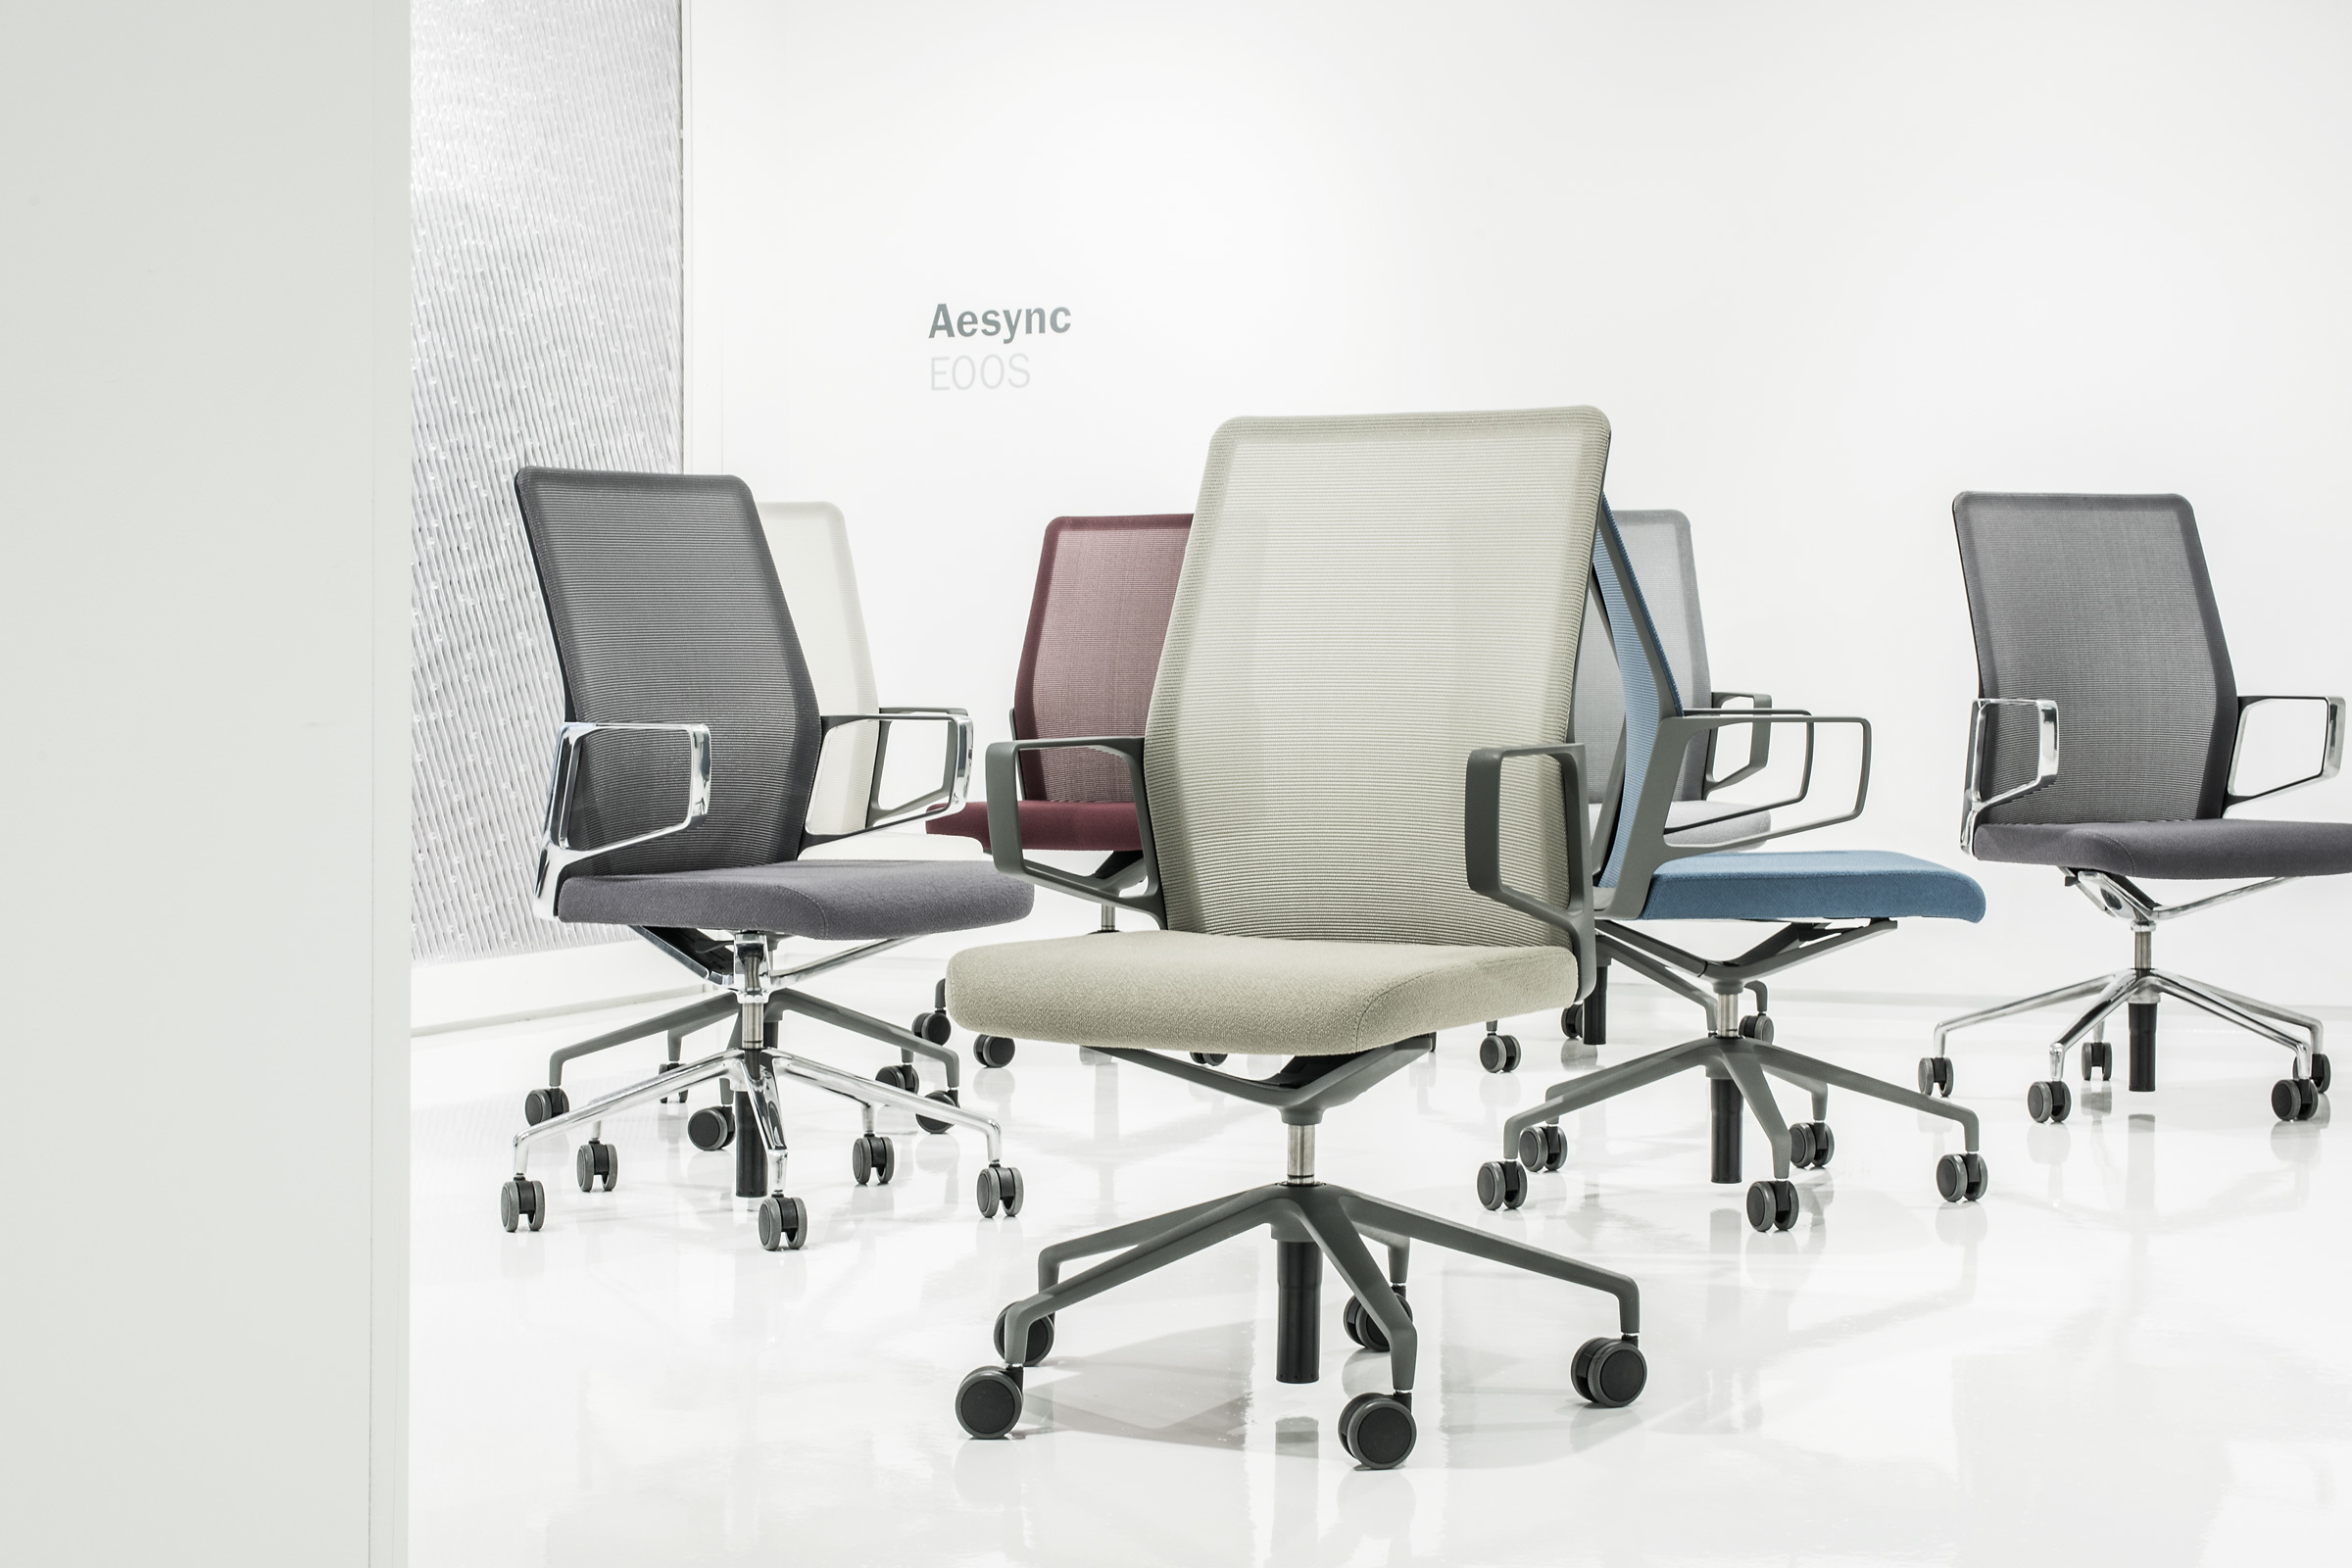 Keilhauer Aesync Group2